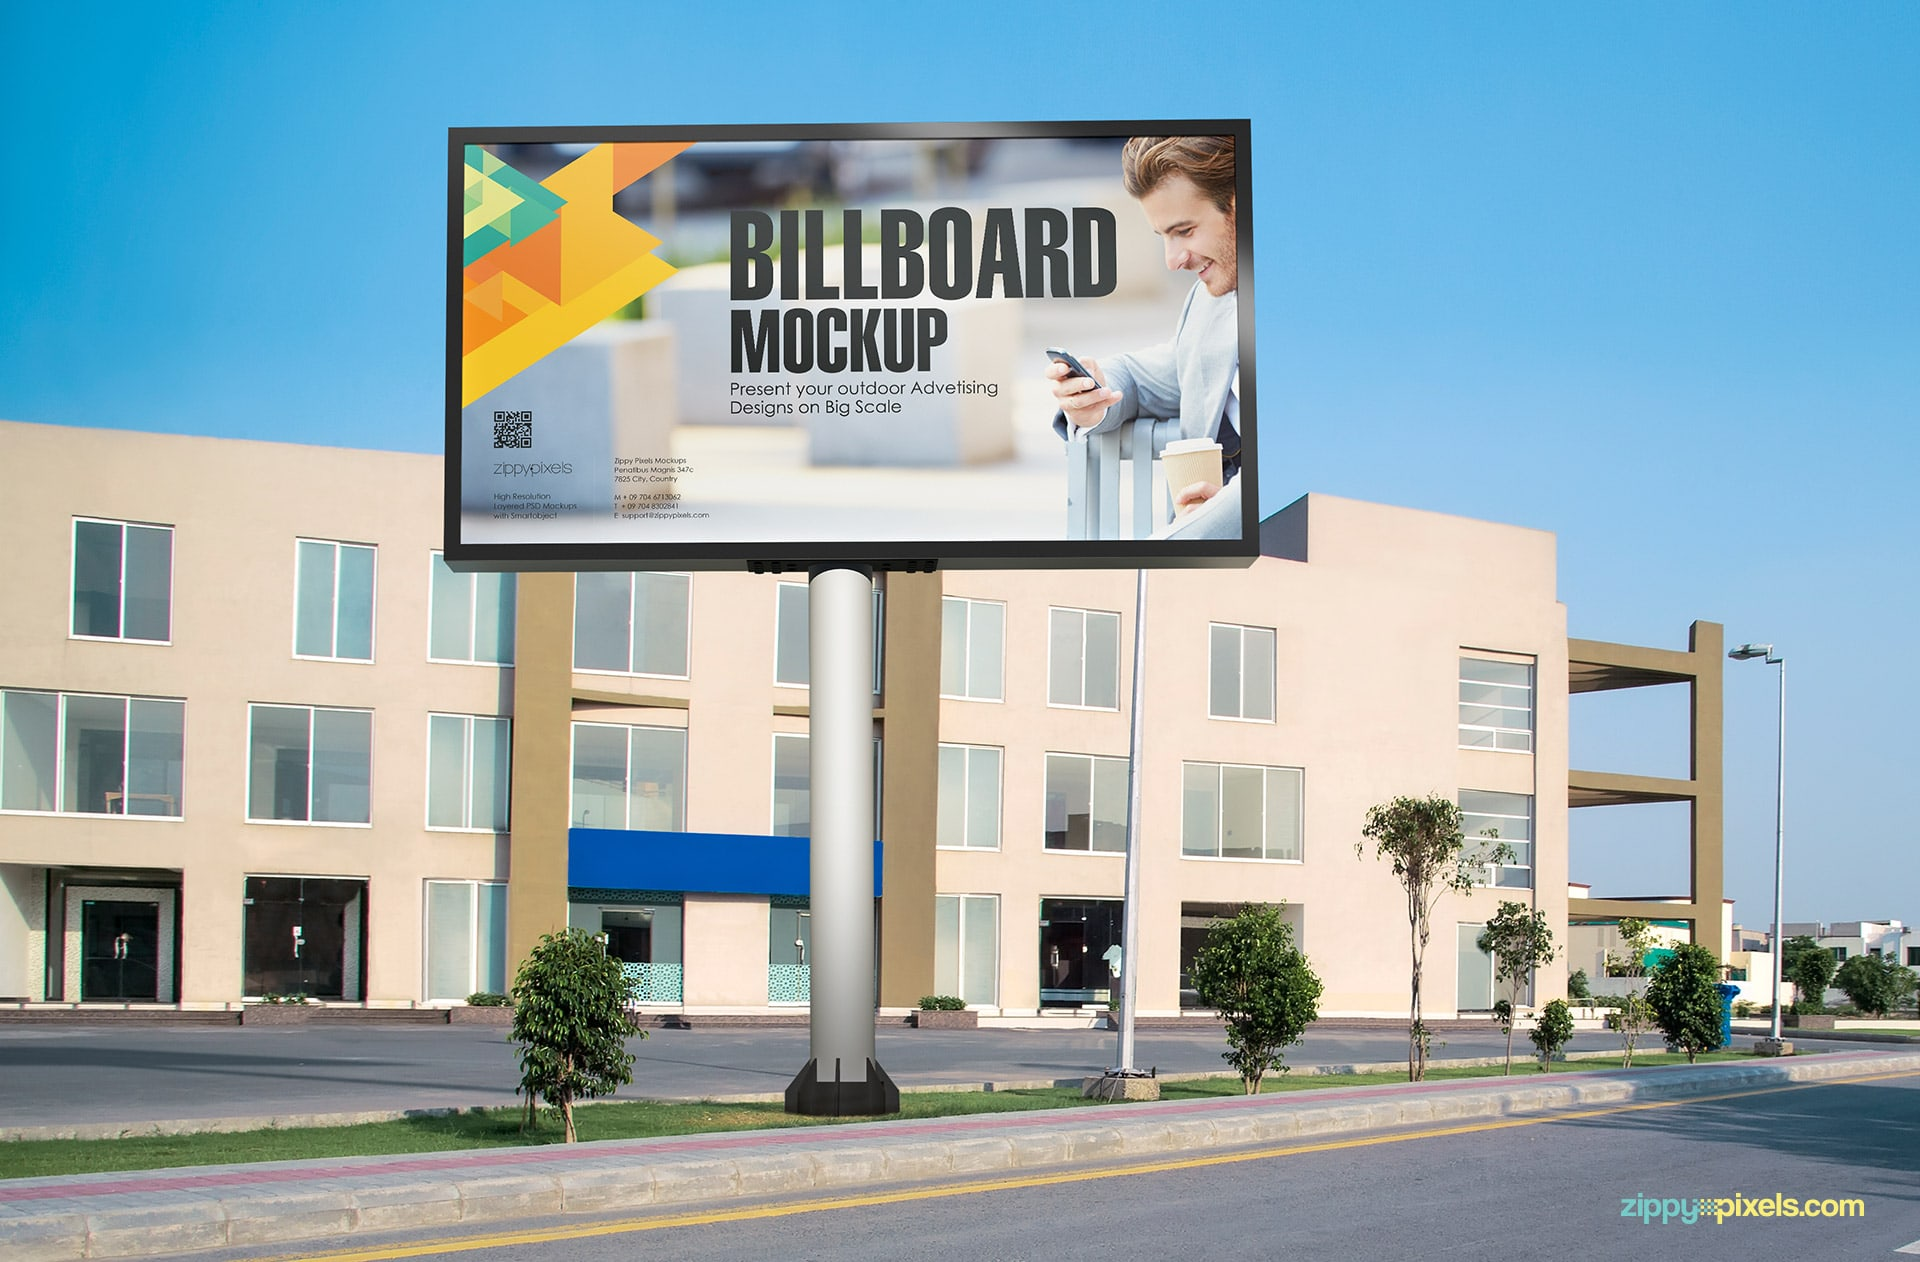 Highly detailed outdoor billboard mockup.